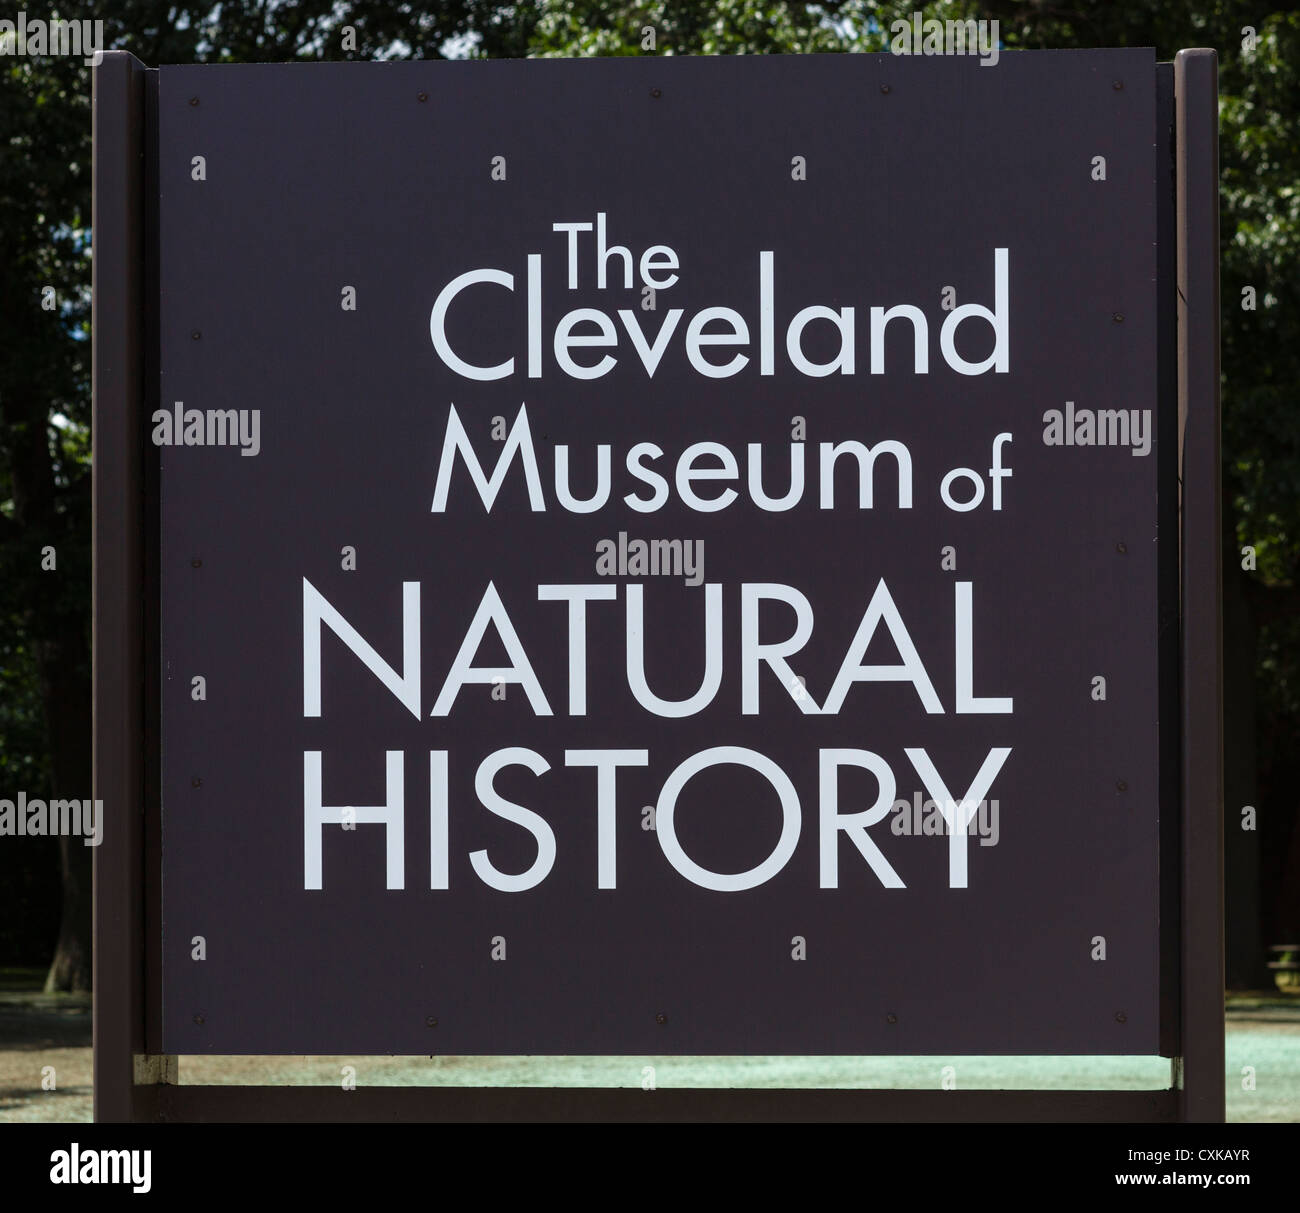 Sign outside Cleveland Museum of Natural History, University Circle district, Ohio, USA - Stock Image